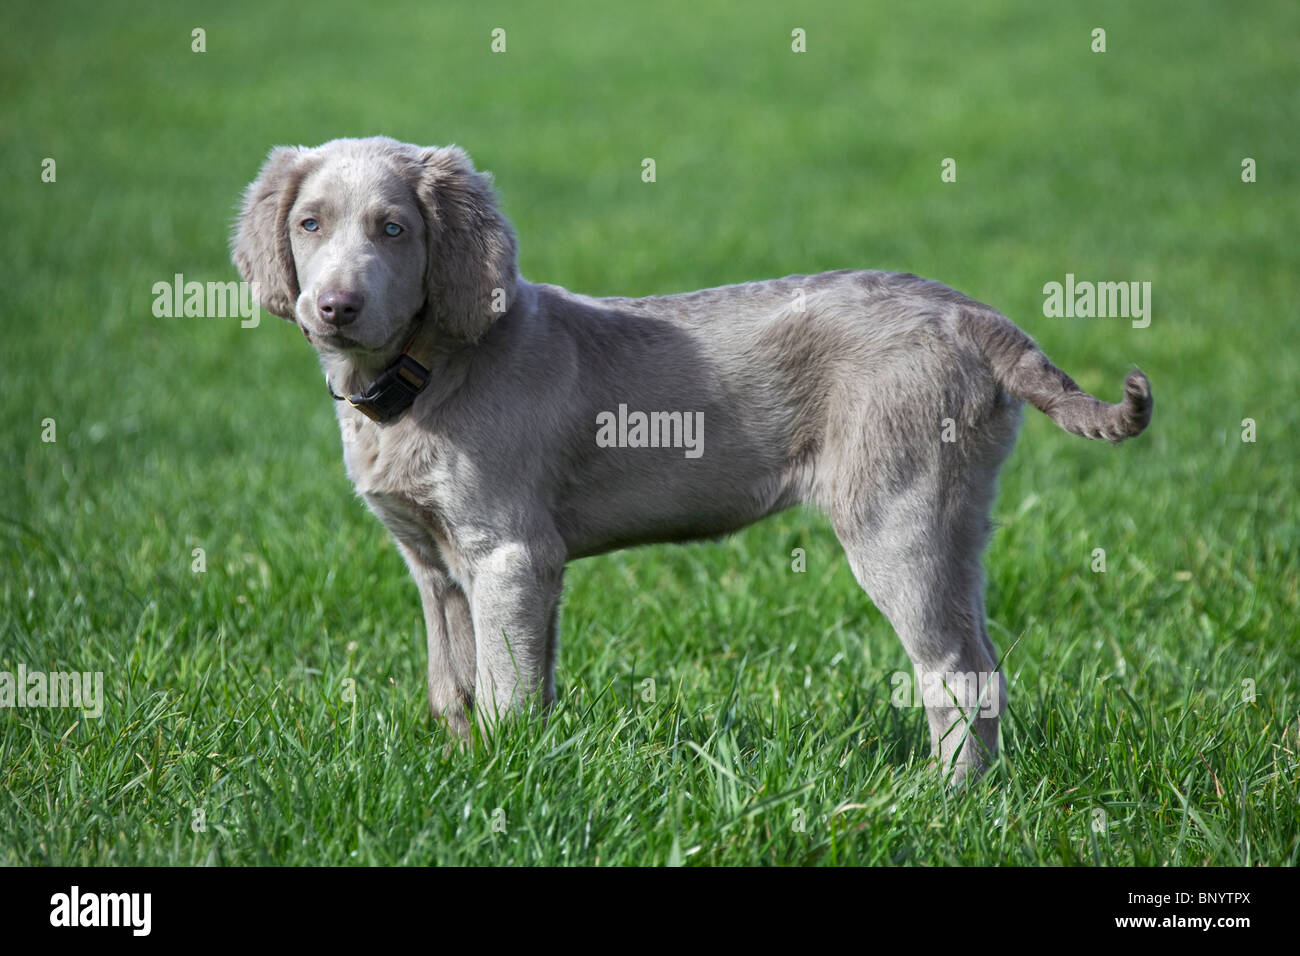 Weimaraner (Canis lupus familiaris) dog, long-haired puppy in field, Germany - Stock Image